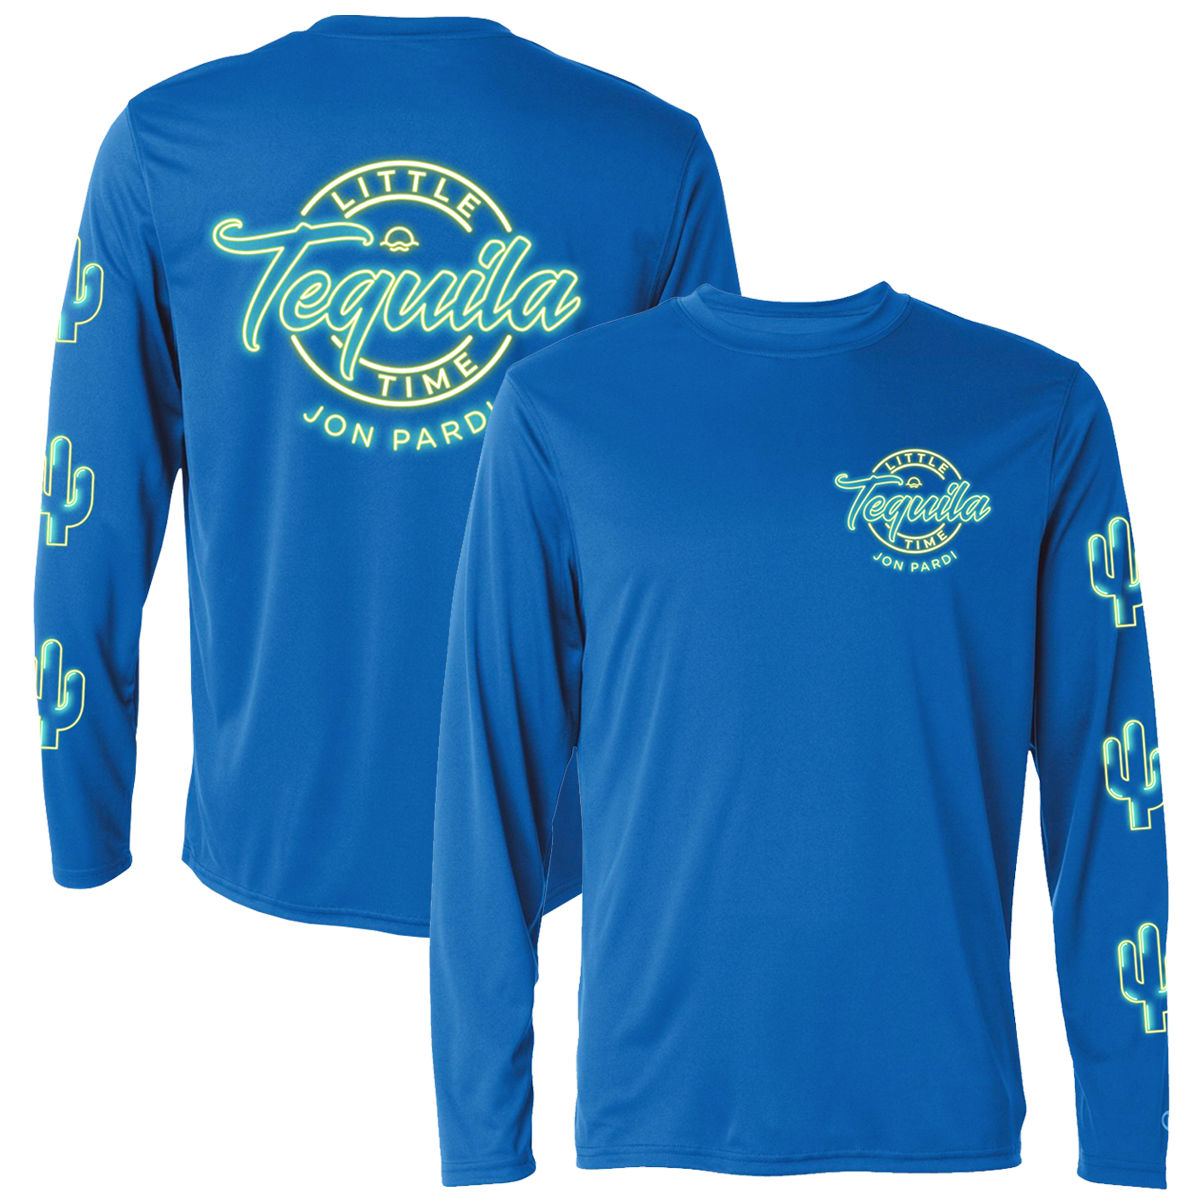 Tequila Little Time Sun Shirt